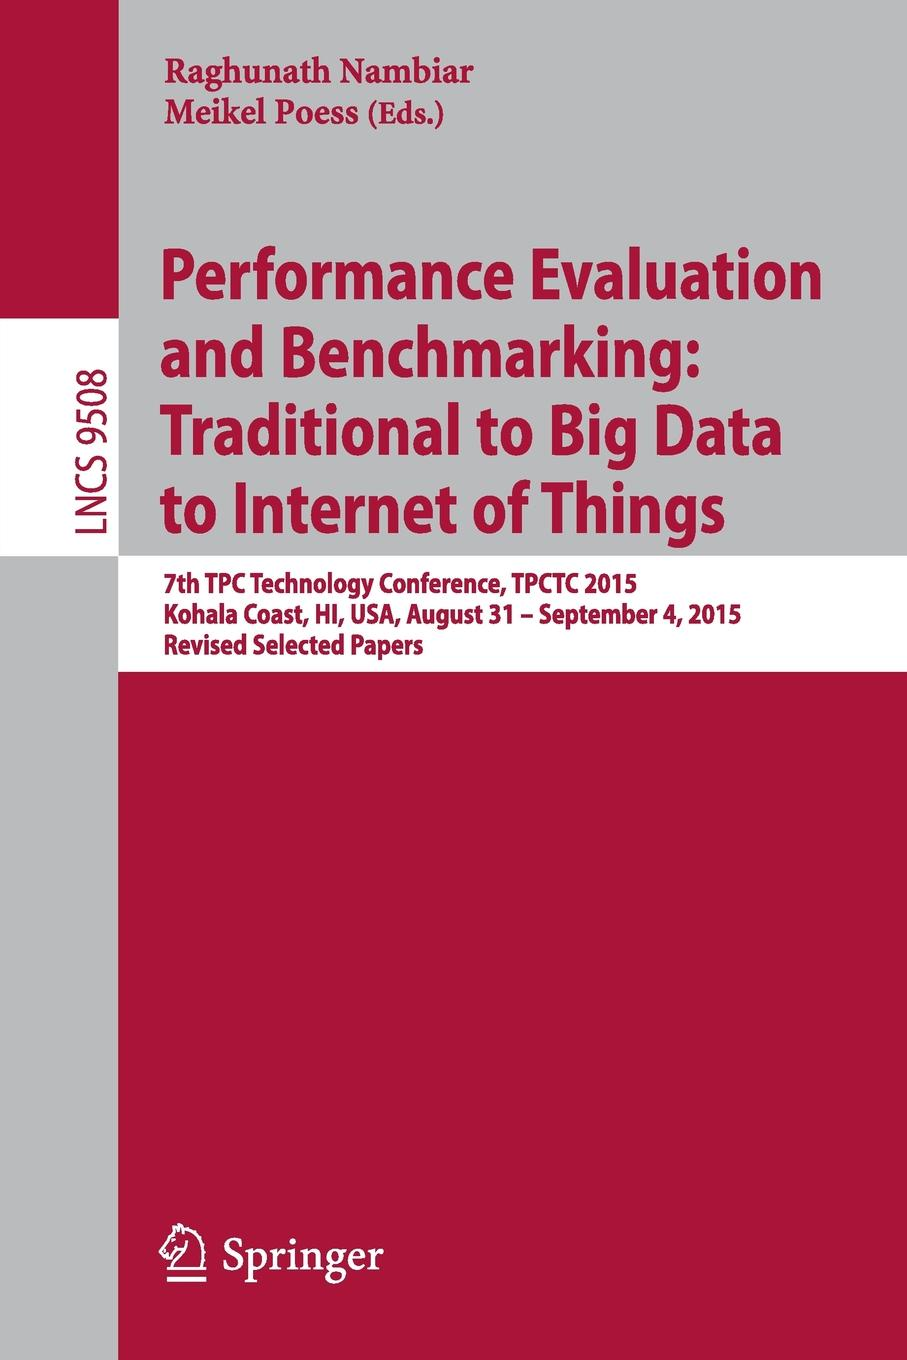 Performance Evaluation and Benchmarking. Traditional to Big Data to Internet of Things : 7th TPC Technology Conference, TPCTC 2015, Kohala Coast, HI, USA, August 31 - September 4, 2015. Revised Selected Papers hwaiyu geng internet of things and data analytics handbook